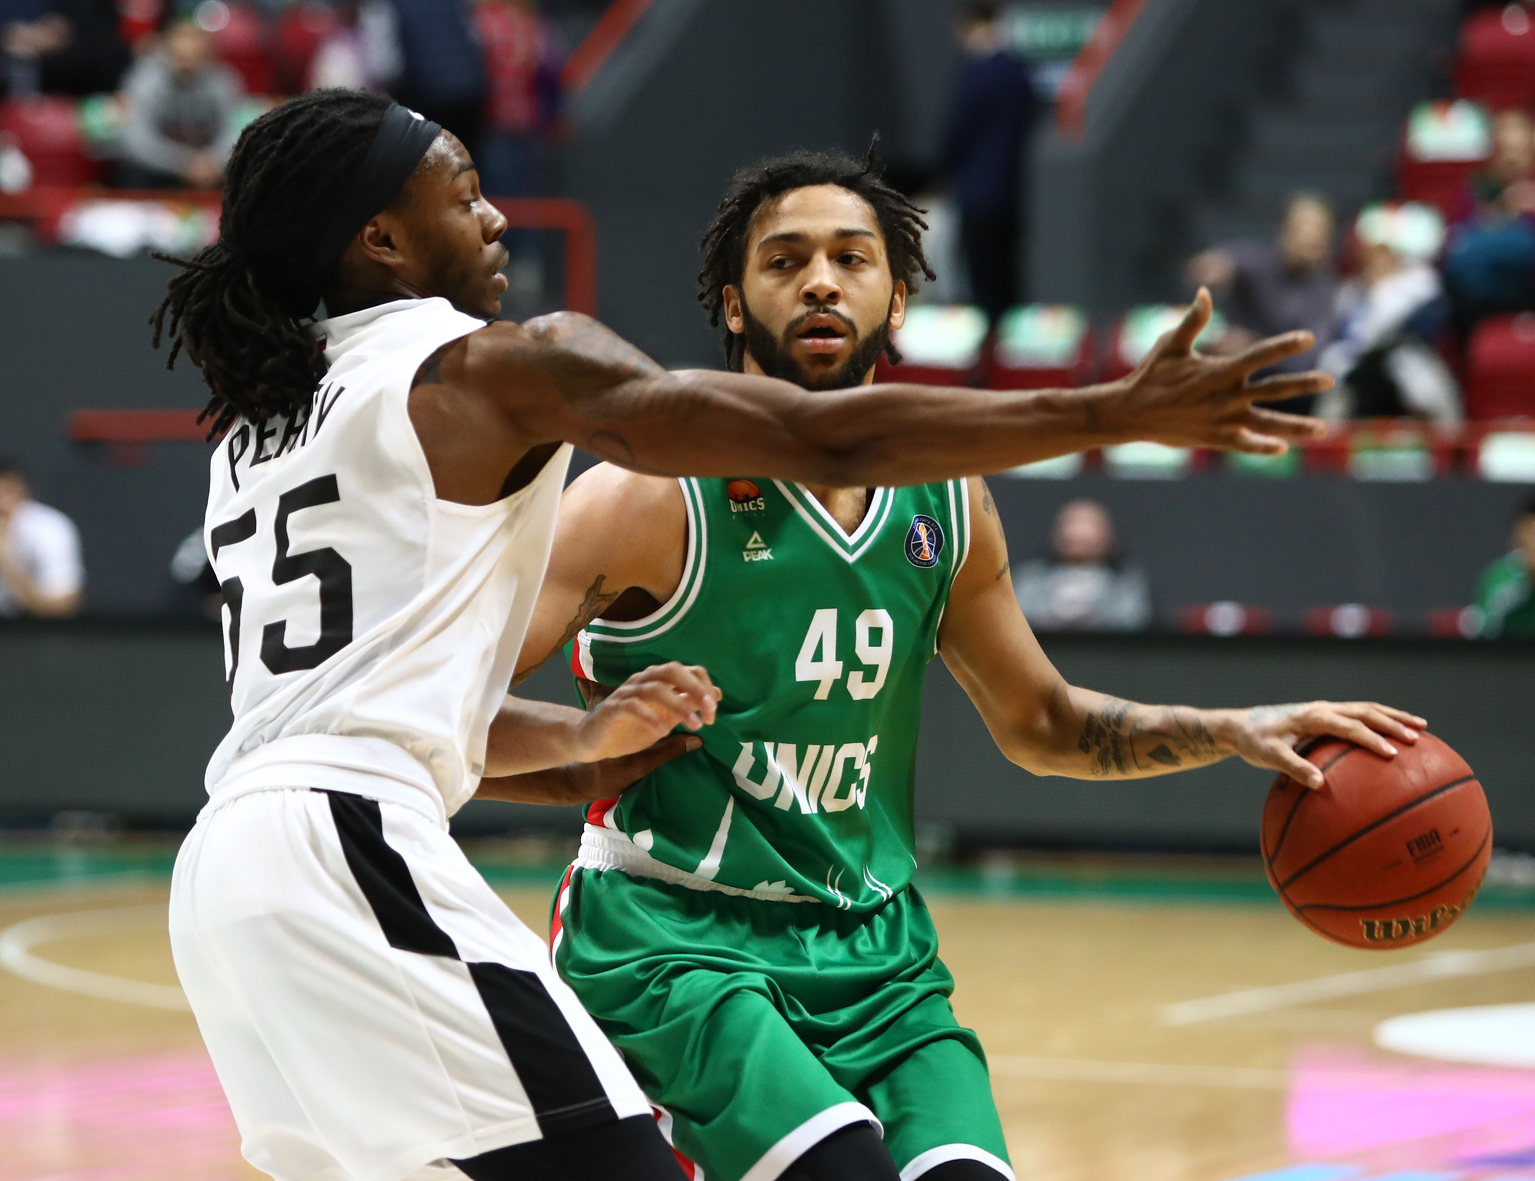 UNICS Crushes Nizhny With Defense